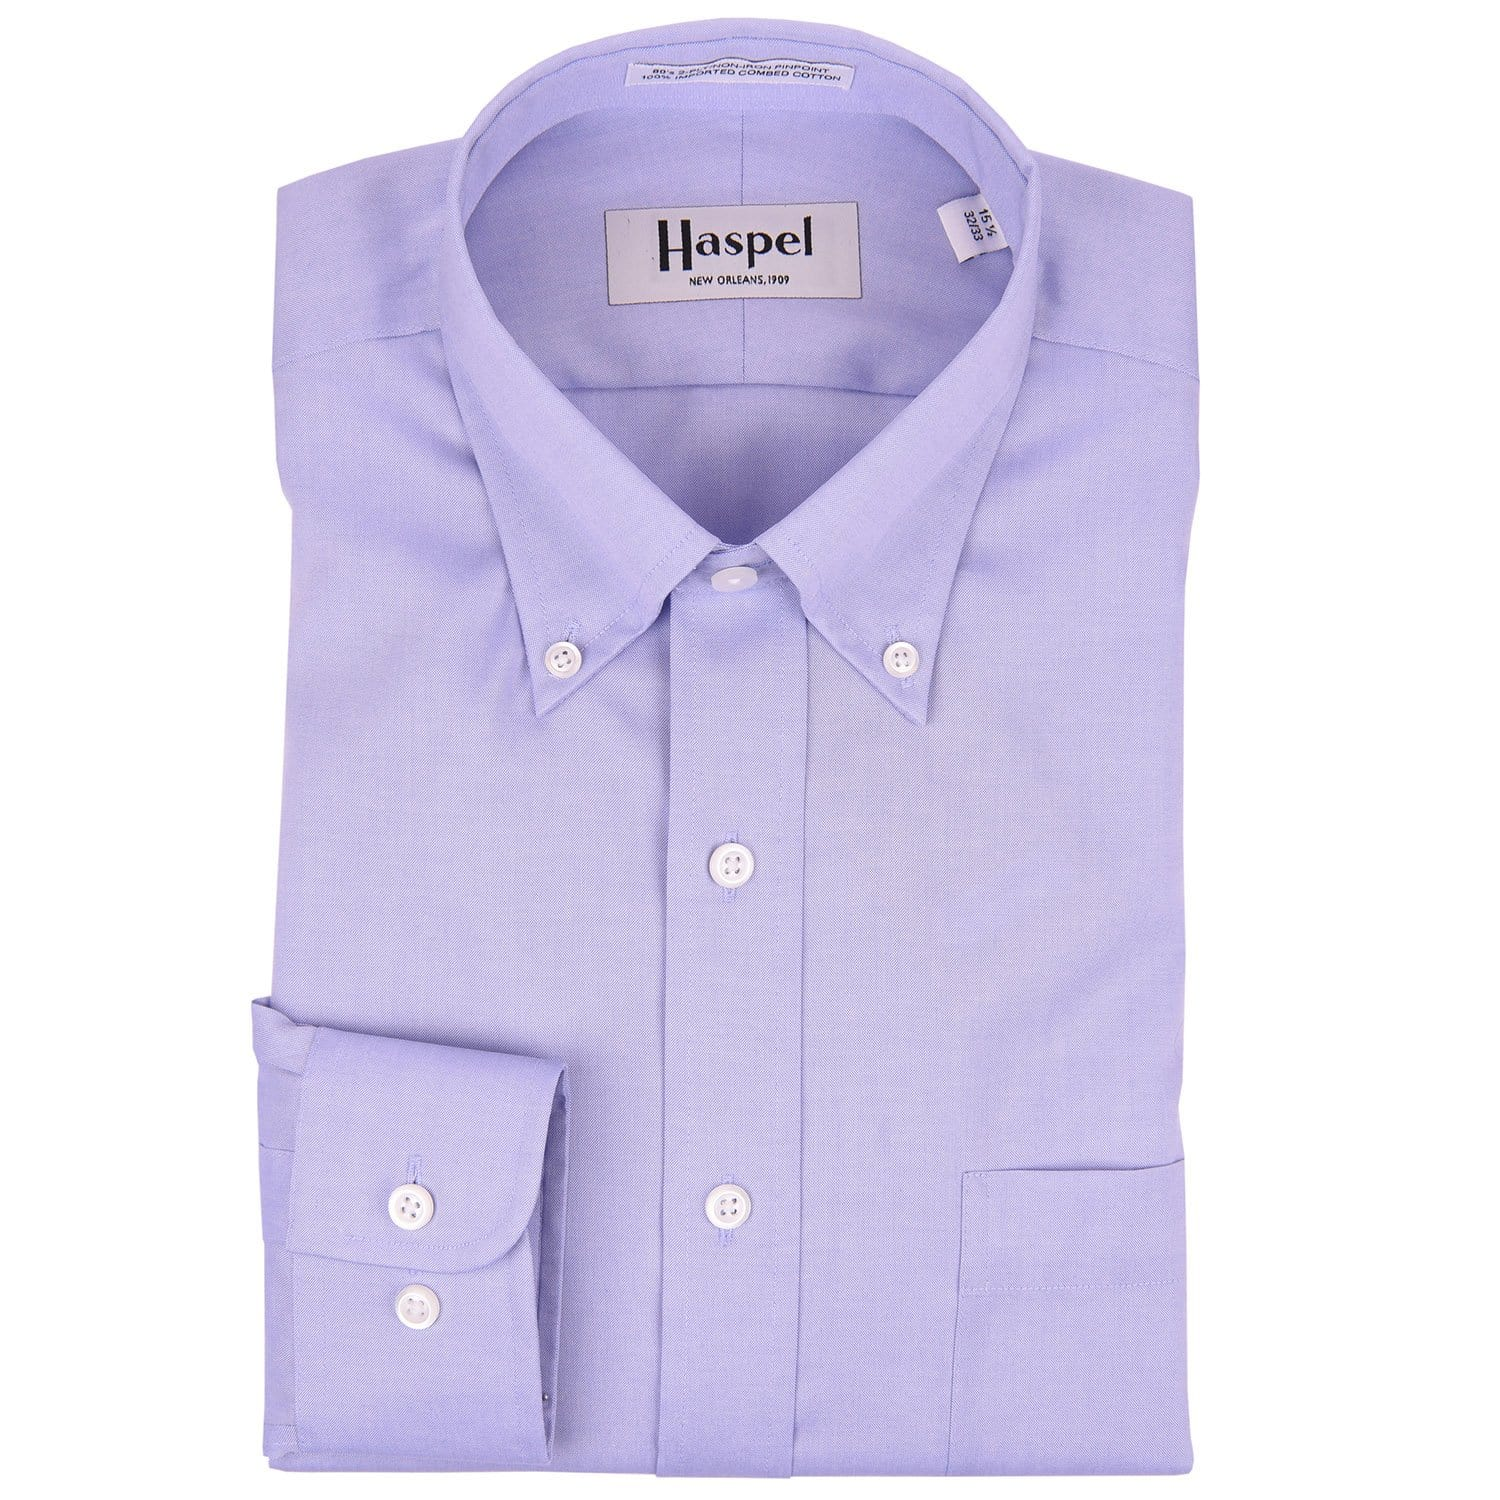 5d674812379 Light Blue Oxford Dress Shirt